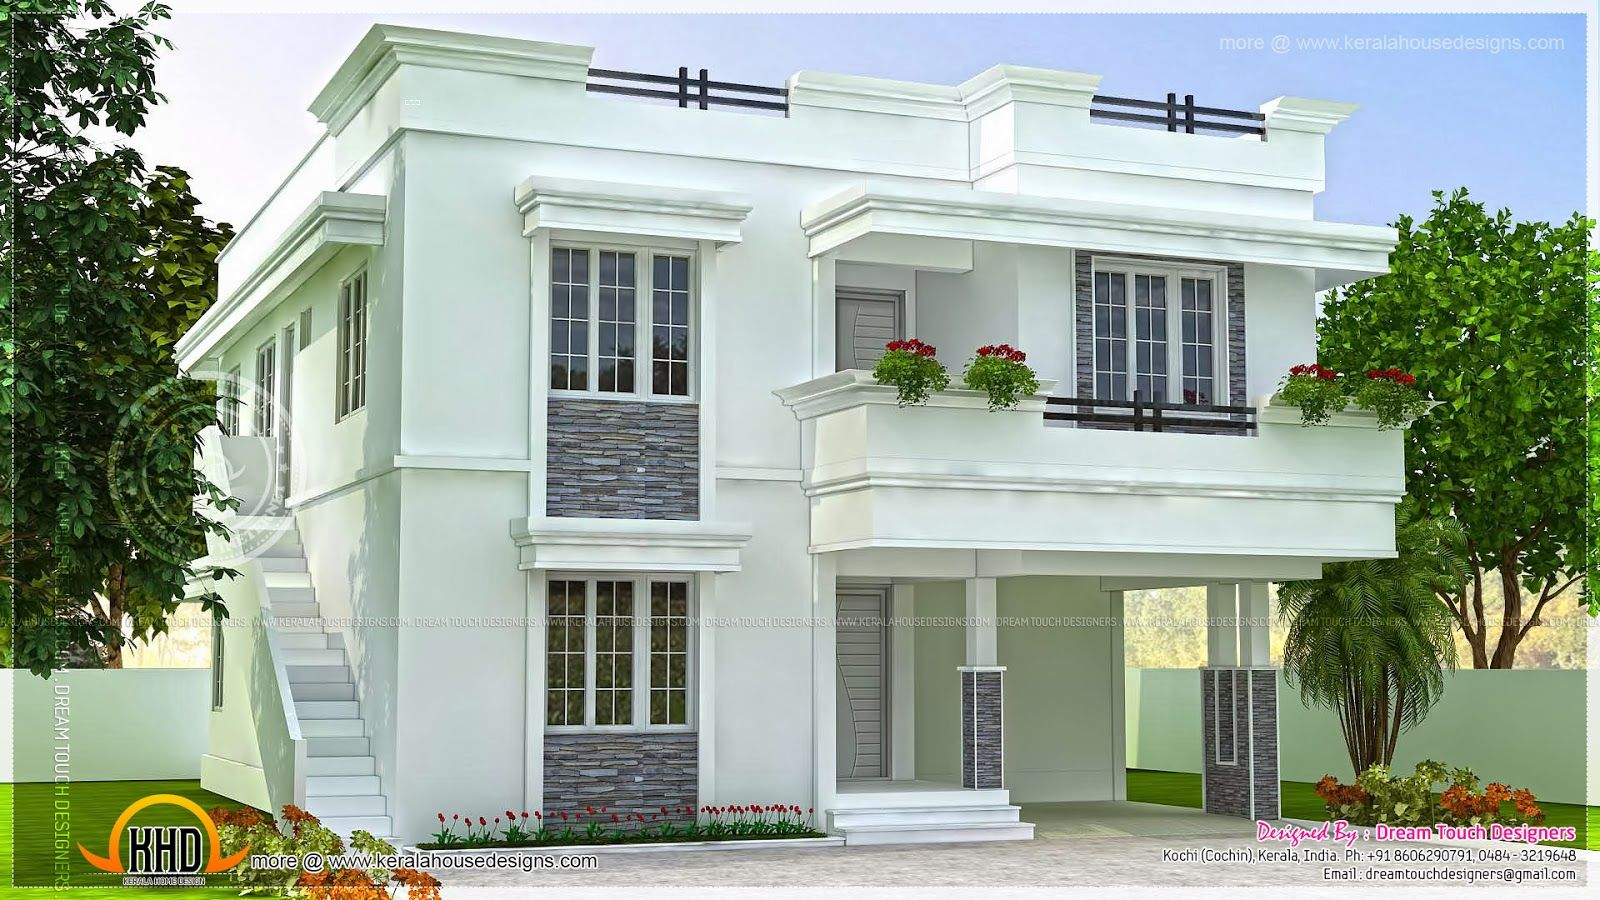 Modern beautiful home modern beautiful home design indian for House outside design ideas